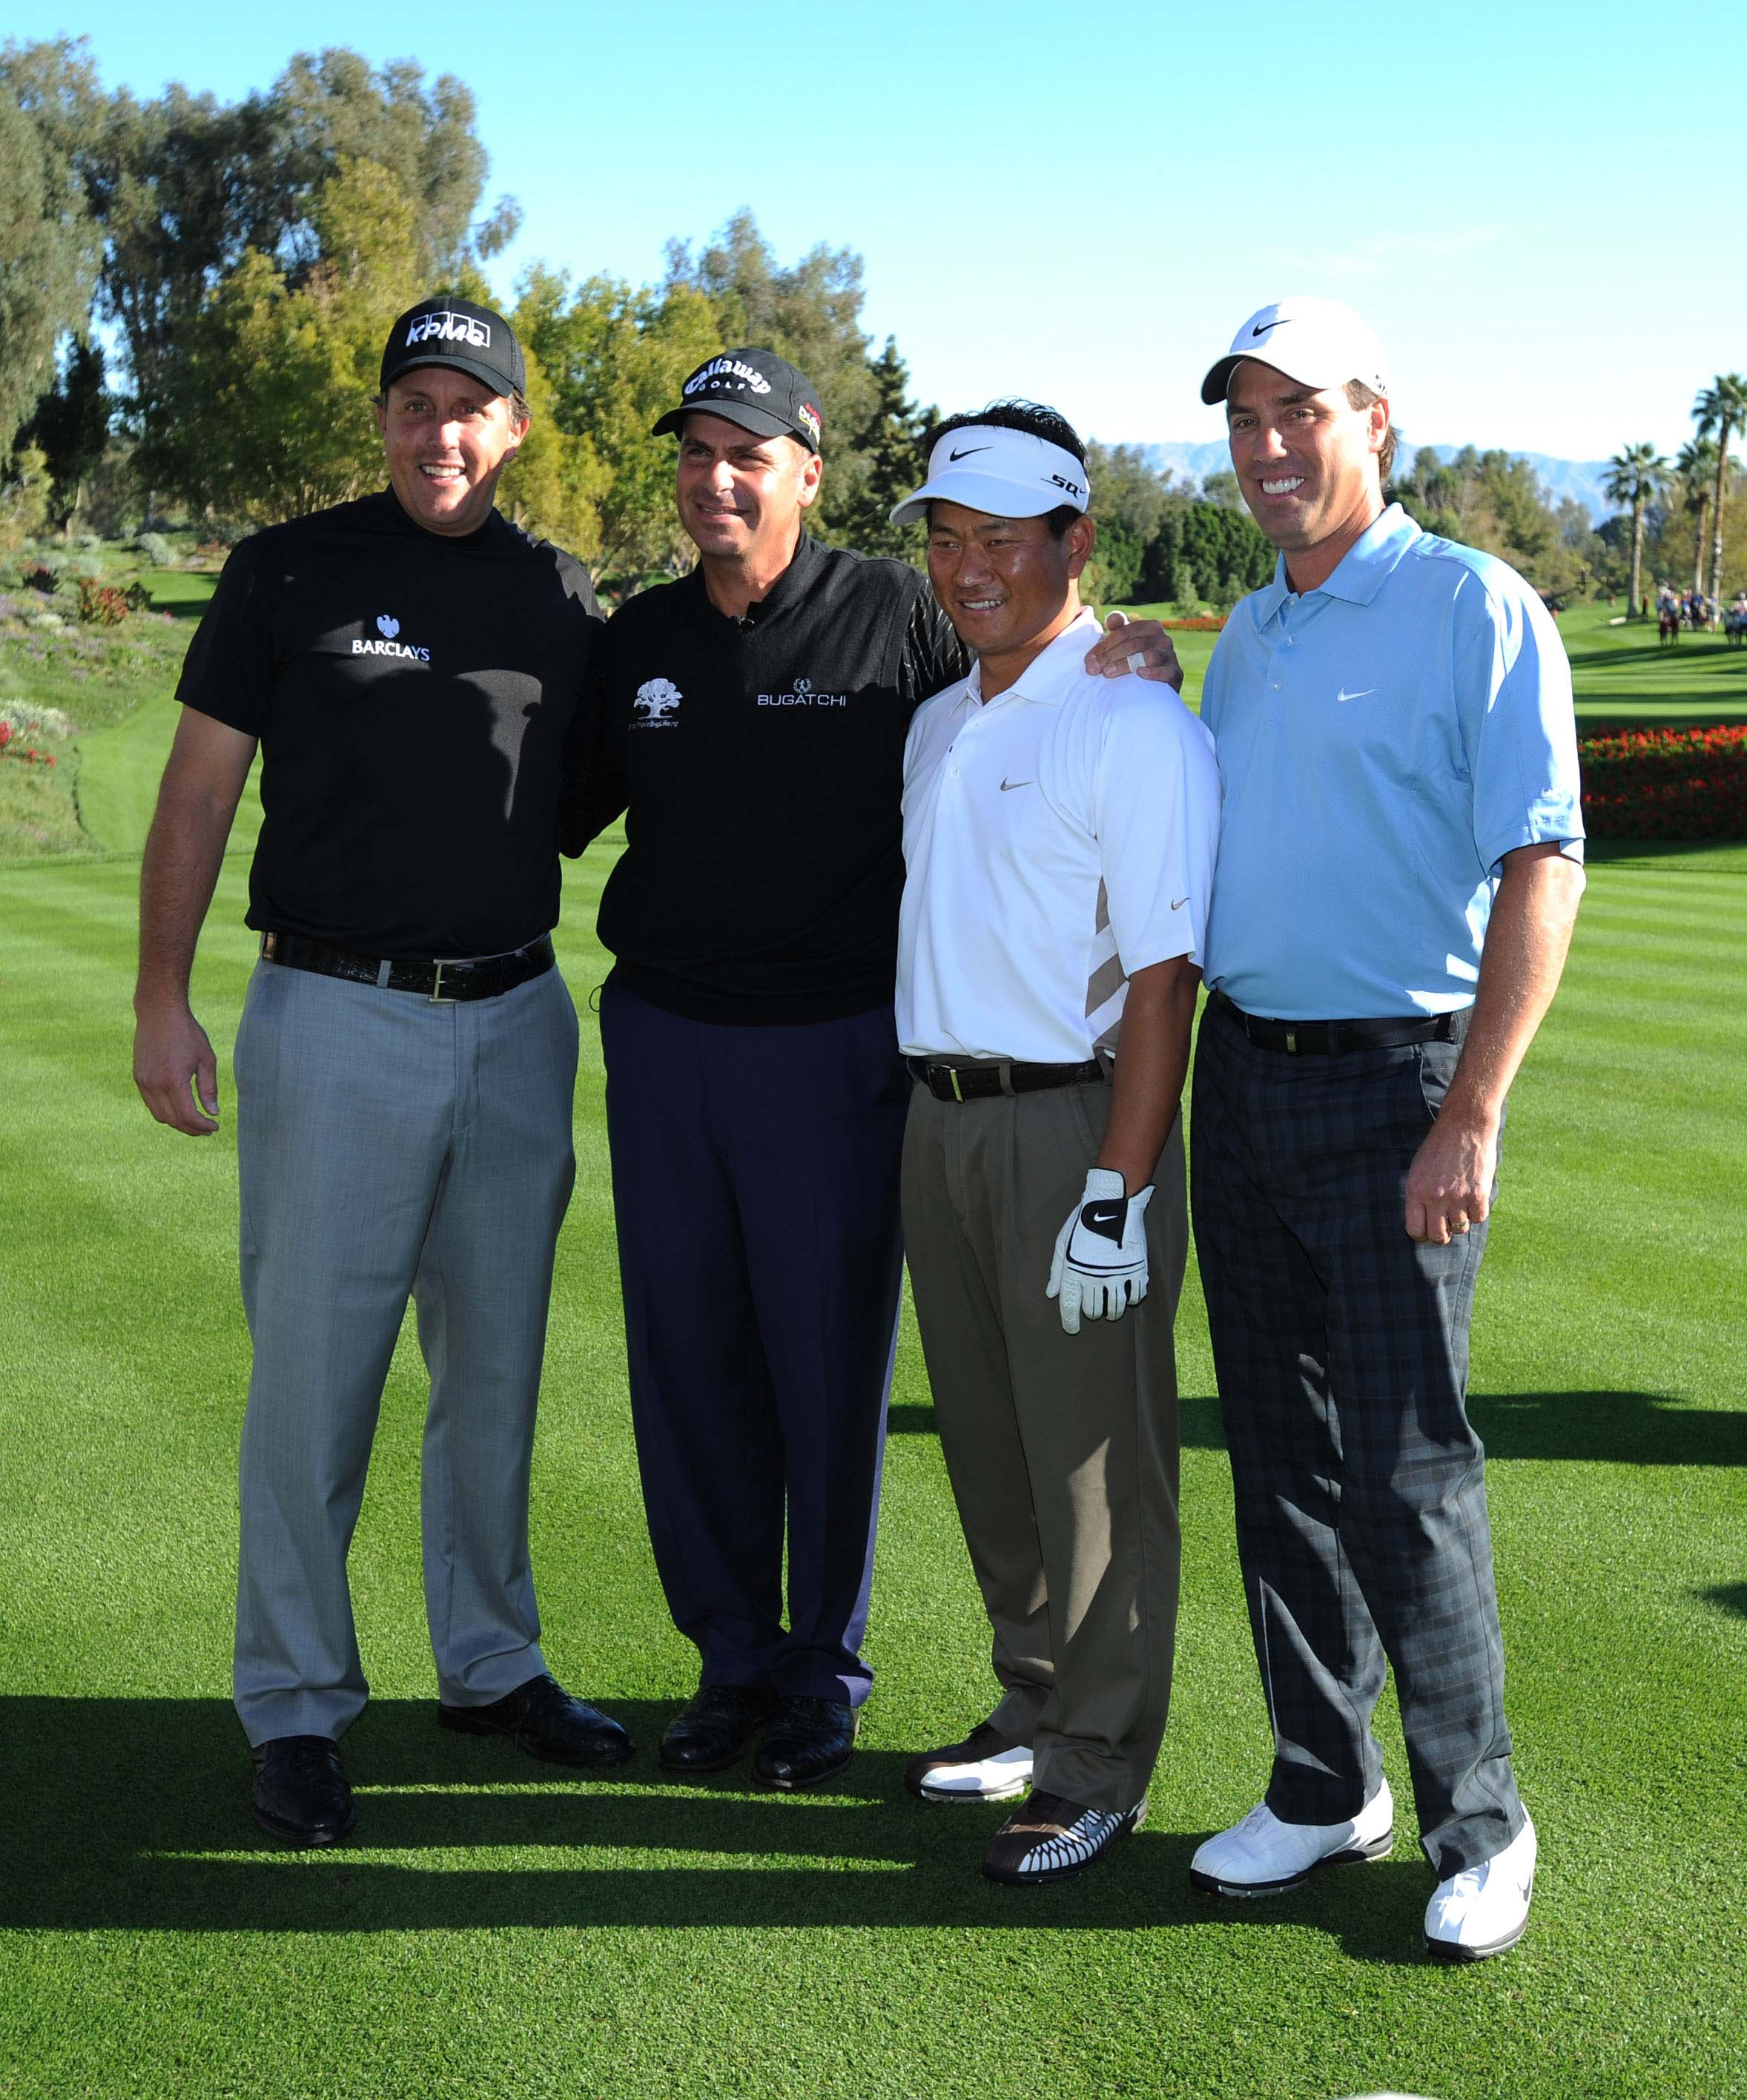 Phil Mickelson, Rocco Mediate, K. J. Choi and Stephen Ames, 2008